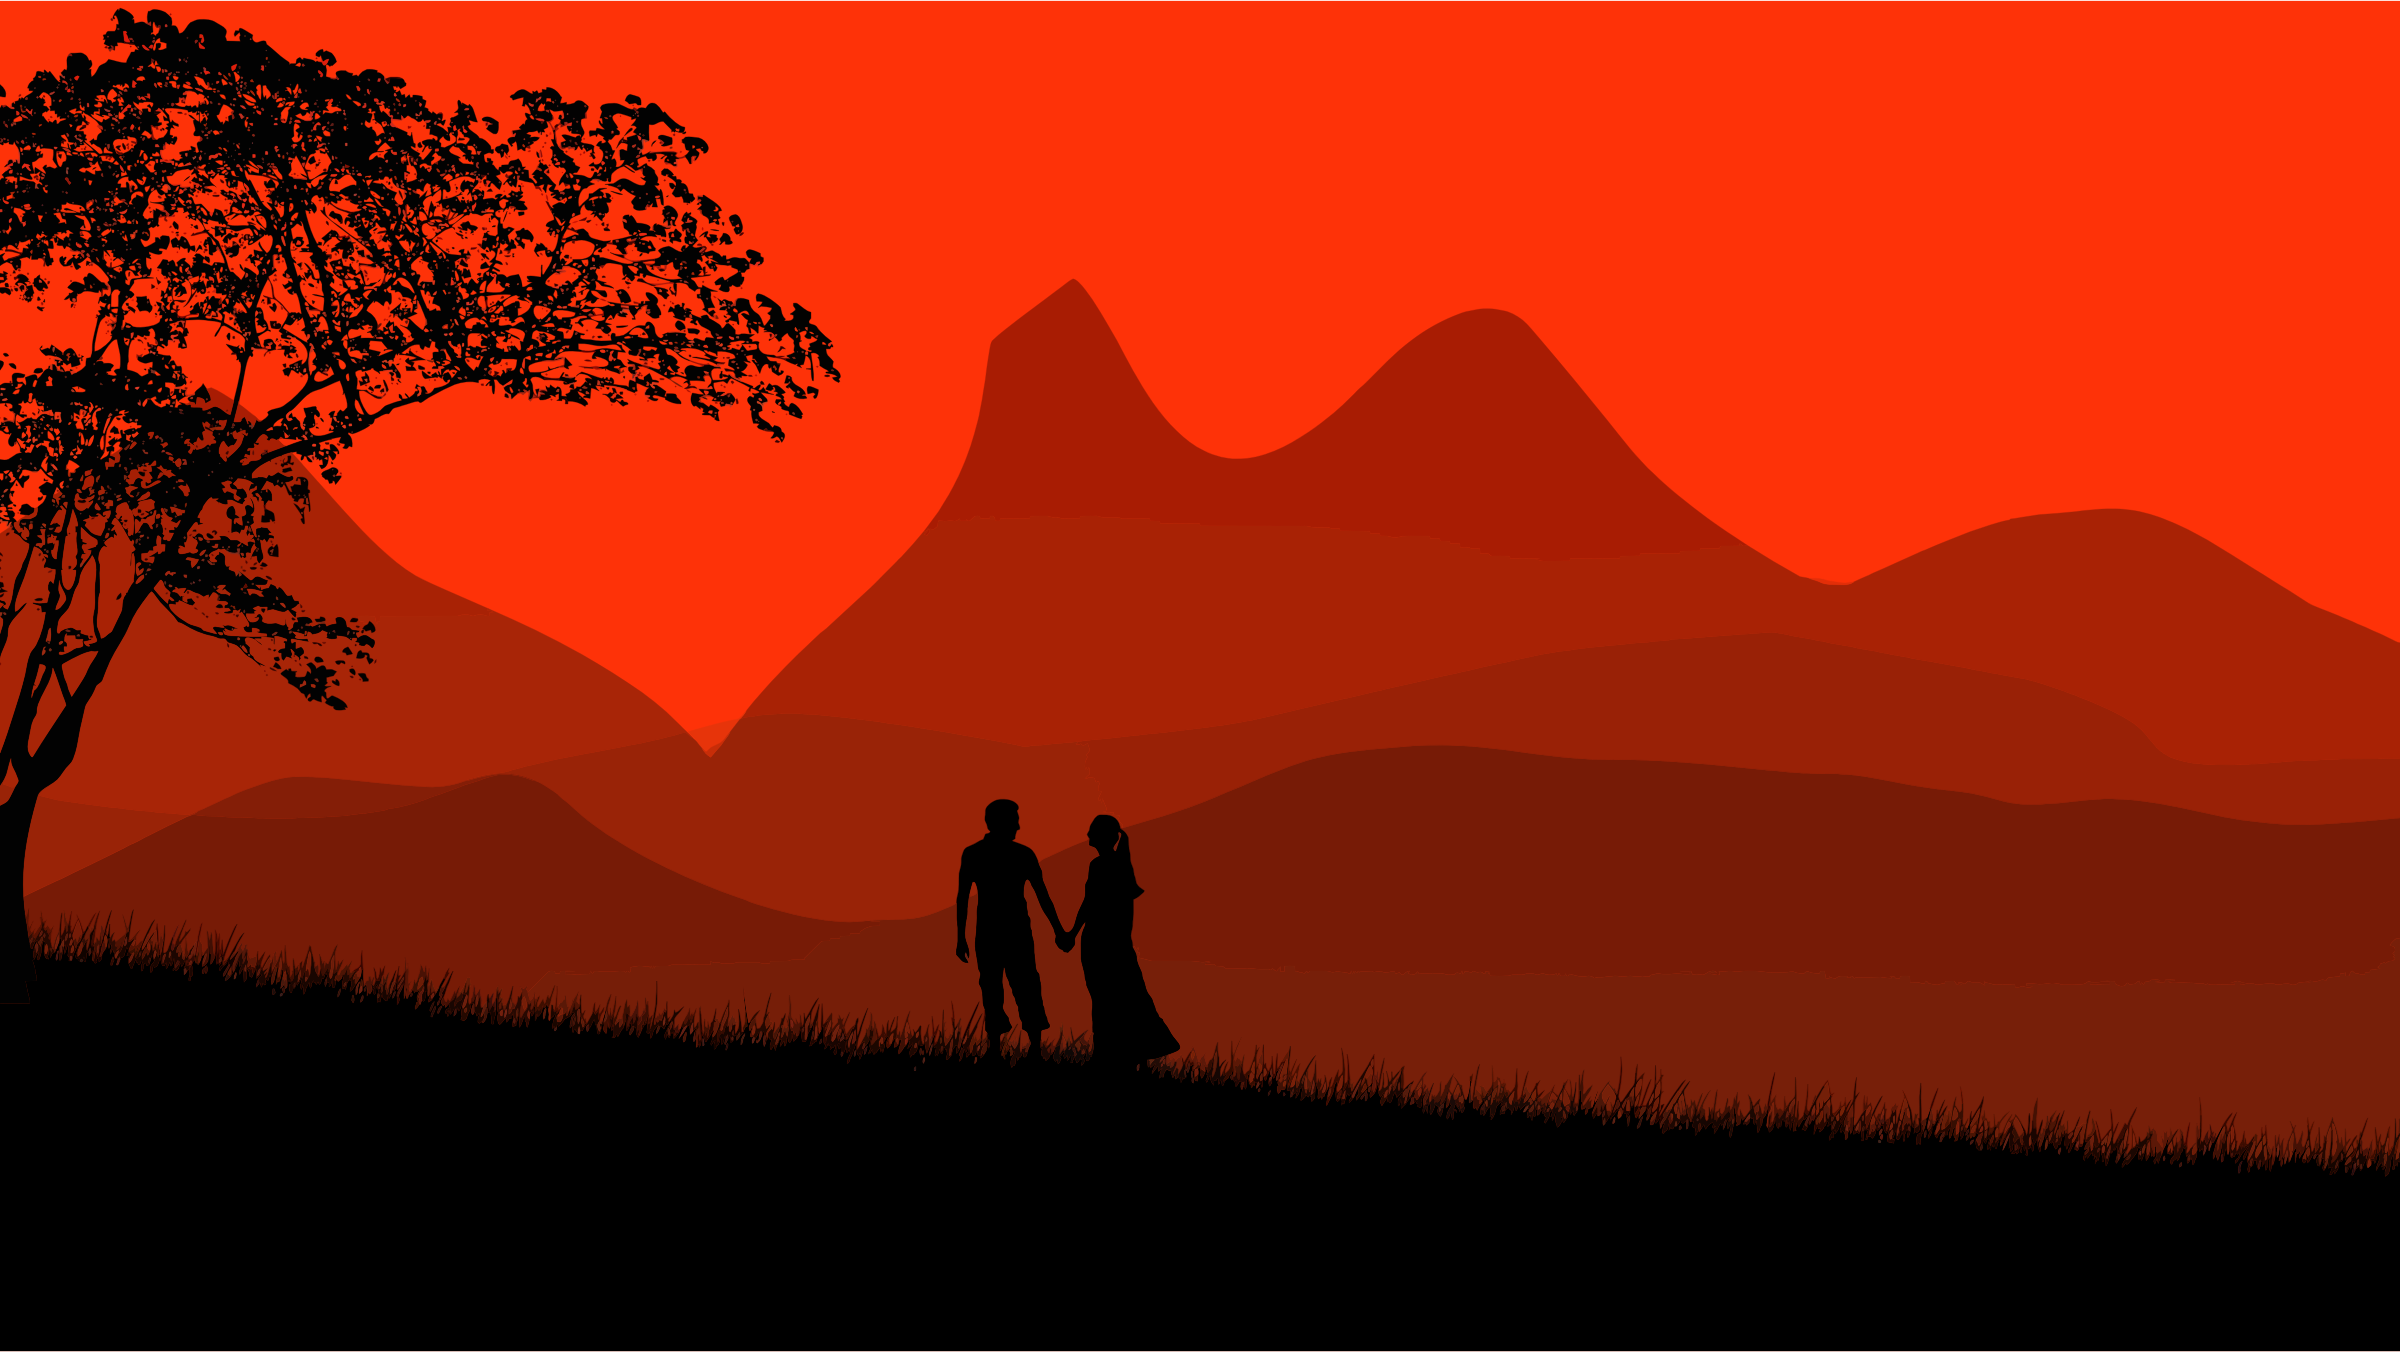 Sunset Couple Silhouette by GDJ